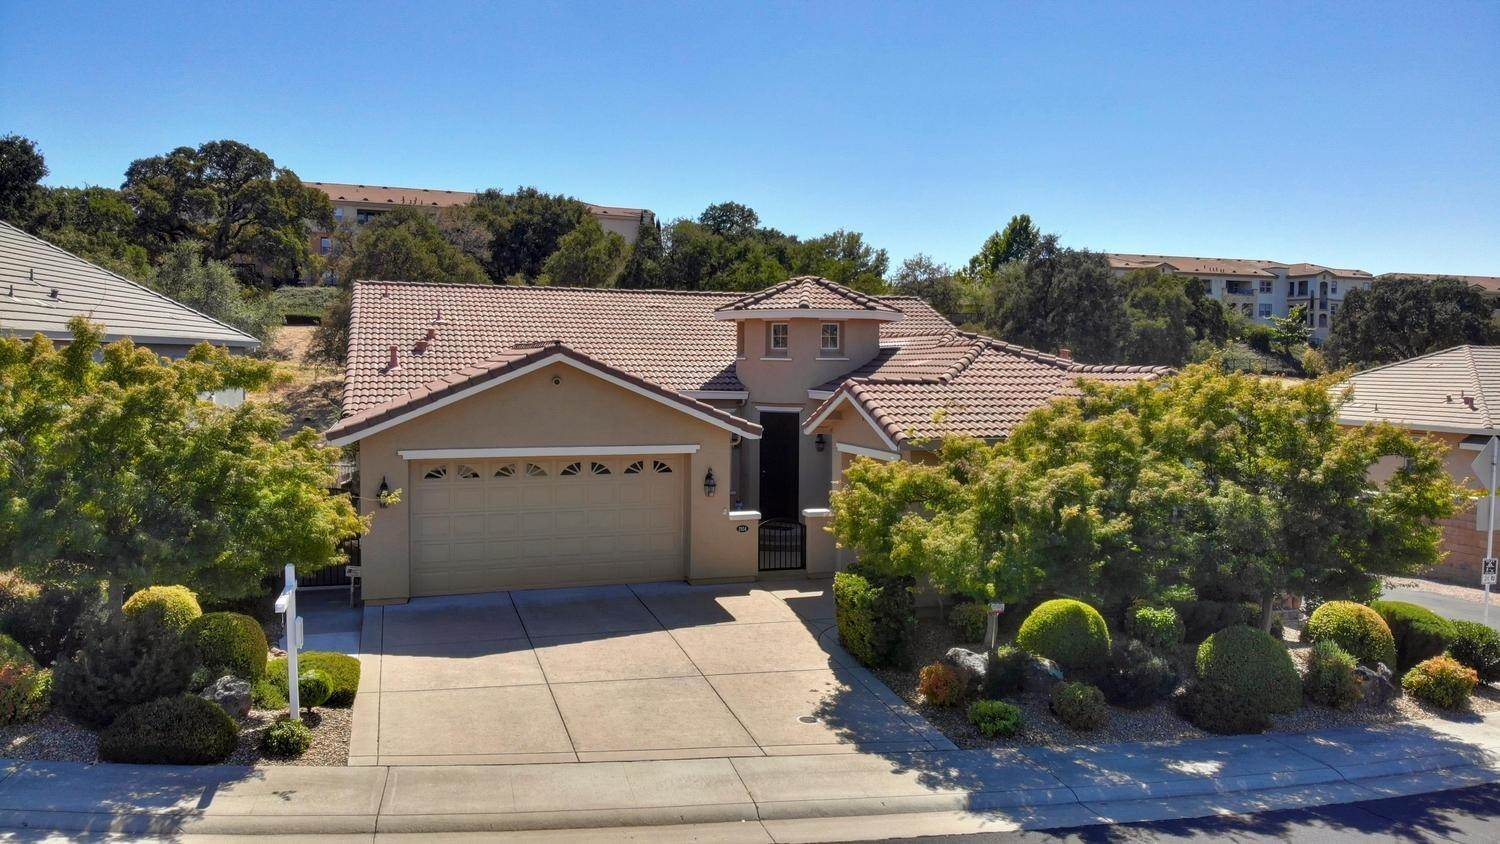 2104 Petruchio Way, Roseville, CA 95661